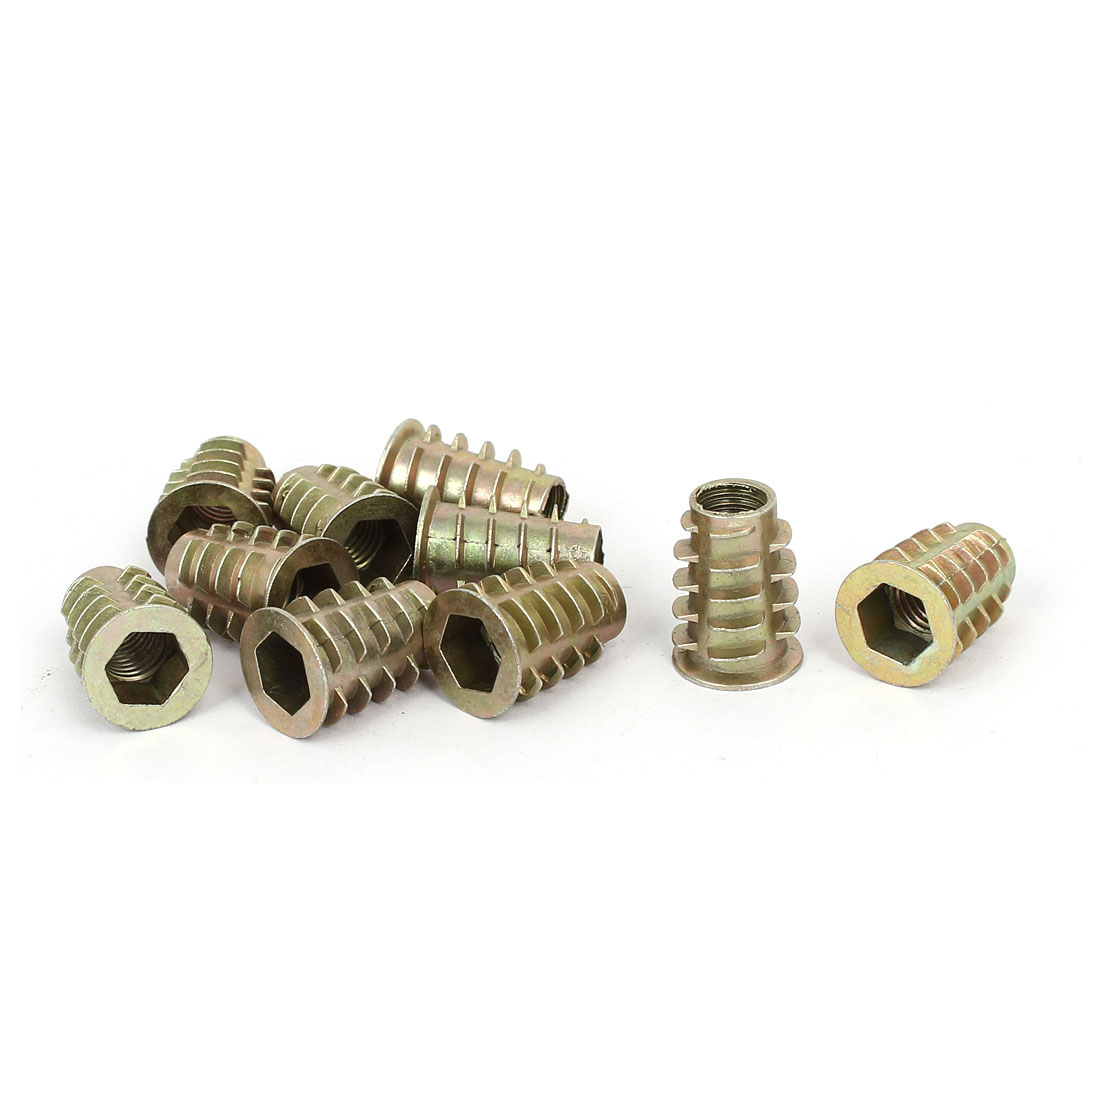 M8 x 20mm Hex Socket Head Insert Screws E-Nuts Furniture Fittings 10pcs